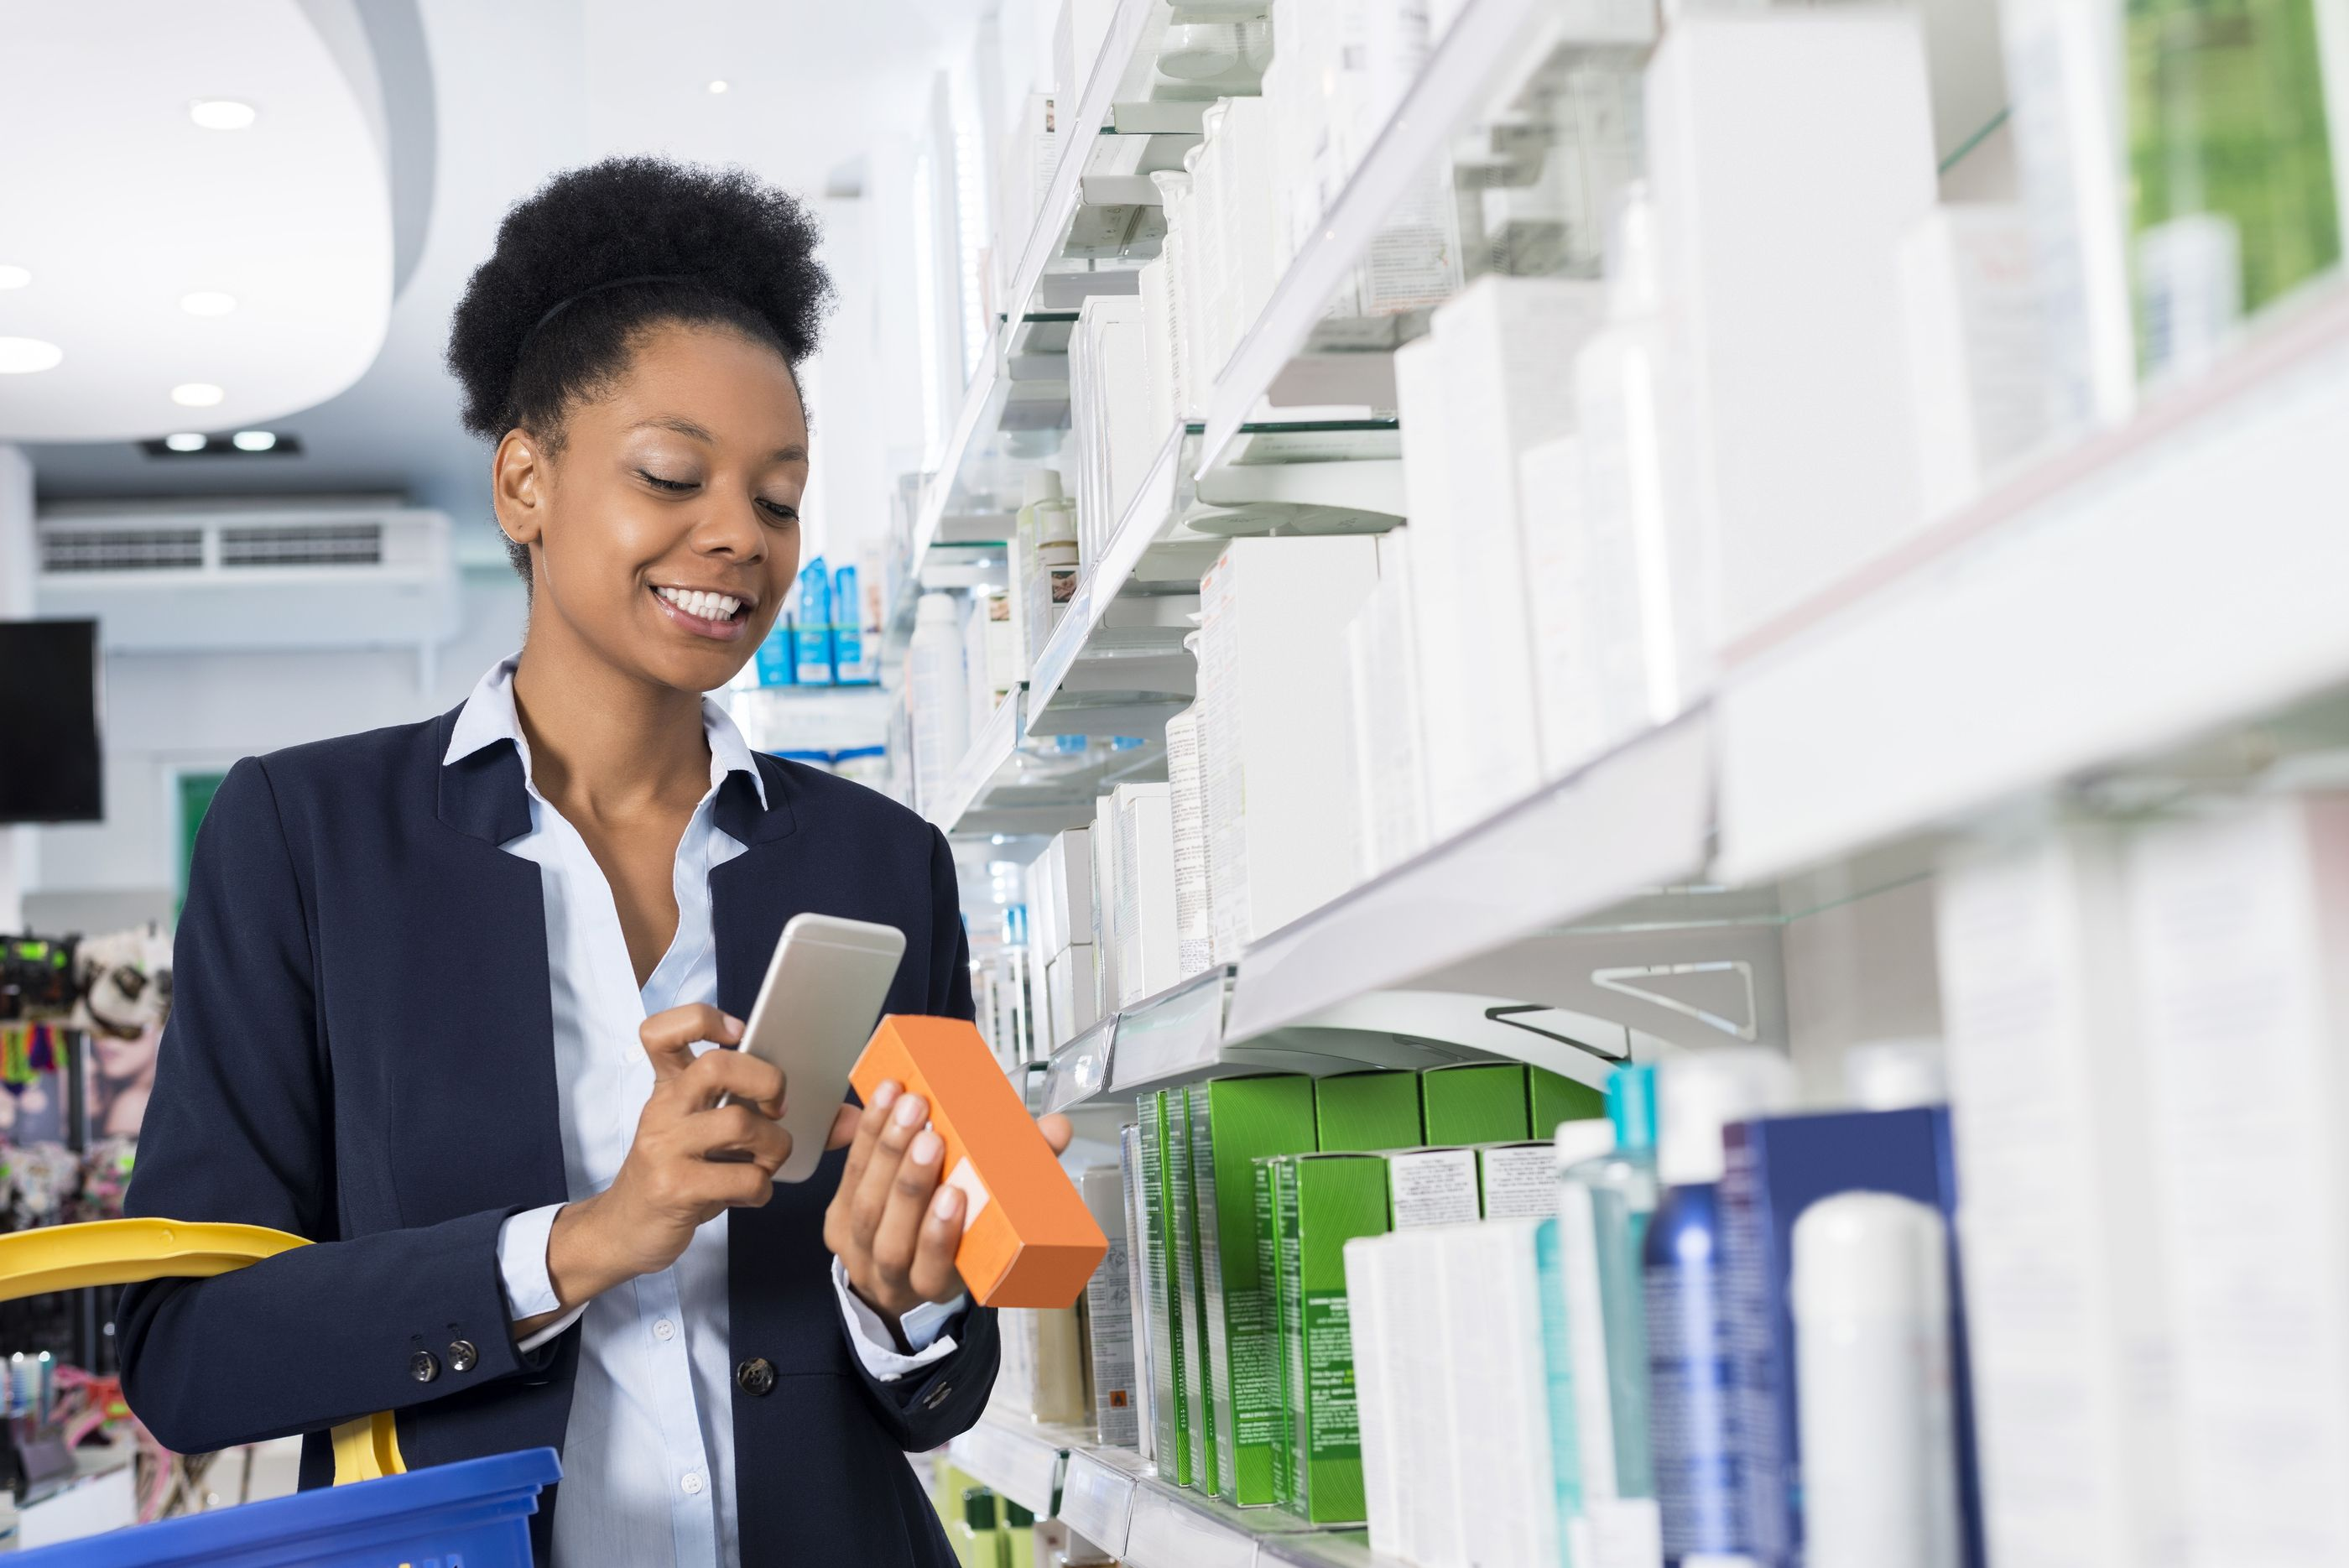 Explore how the best pharmacy rewards program for Android and iPhone help you find sales and earn rewards that can be redeemed for cash or gift cards.